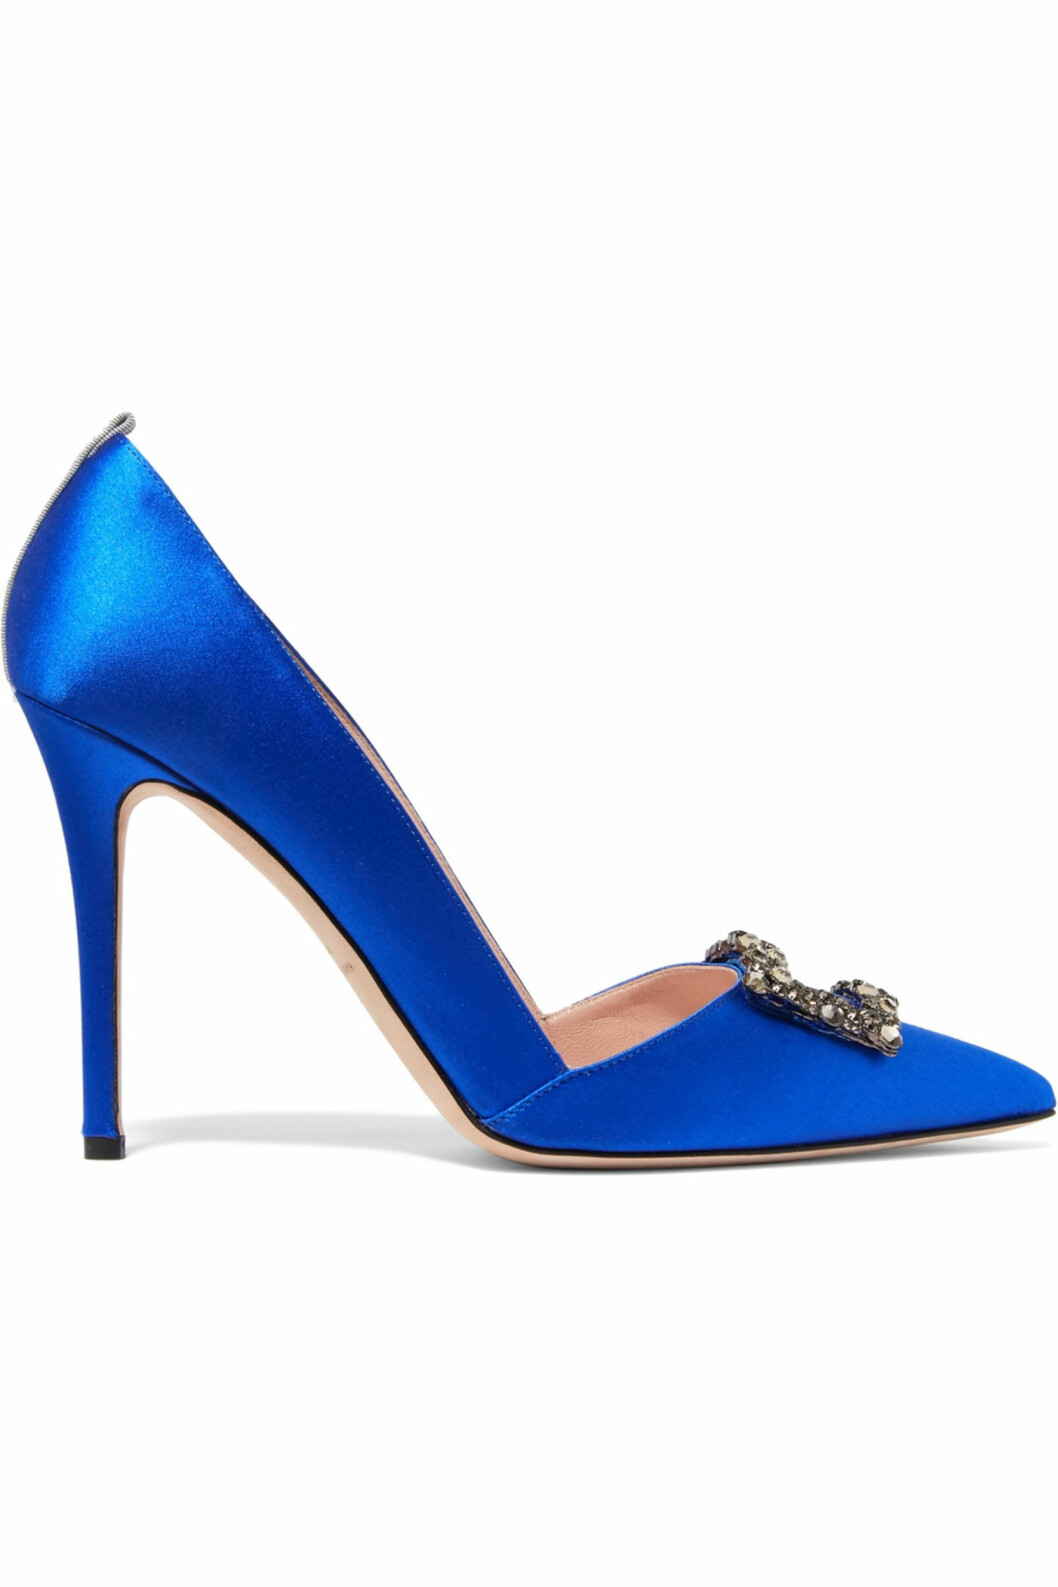 Hæler fra SJP By Sarah Jessica Parker via Net-a-porter.com | kr 4878 | https://www.net-a-porter.com/no/en/product/800974/sjp_by_sarah_jessica_parker/windsor-embellished-satin-pumps